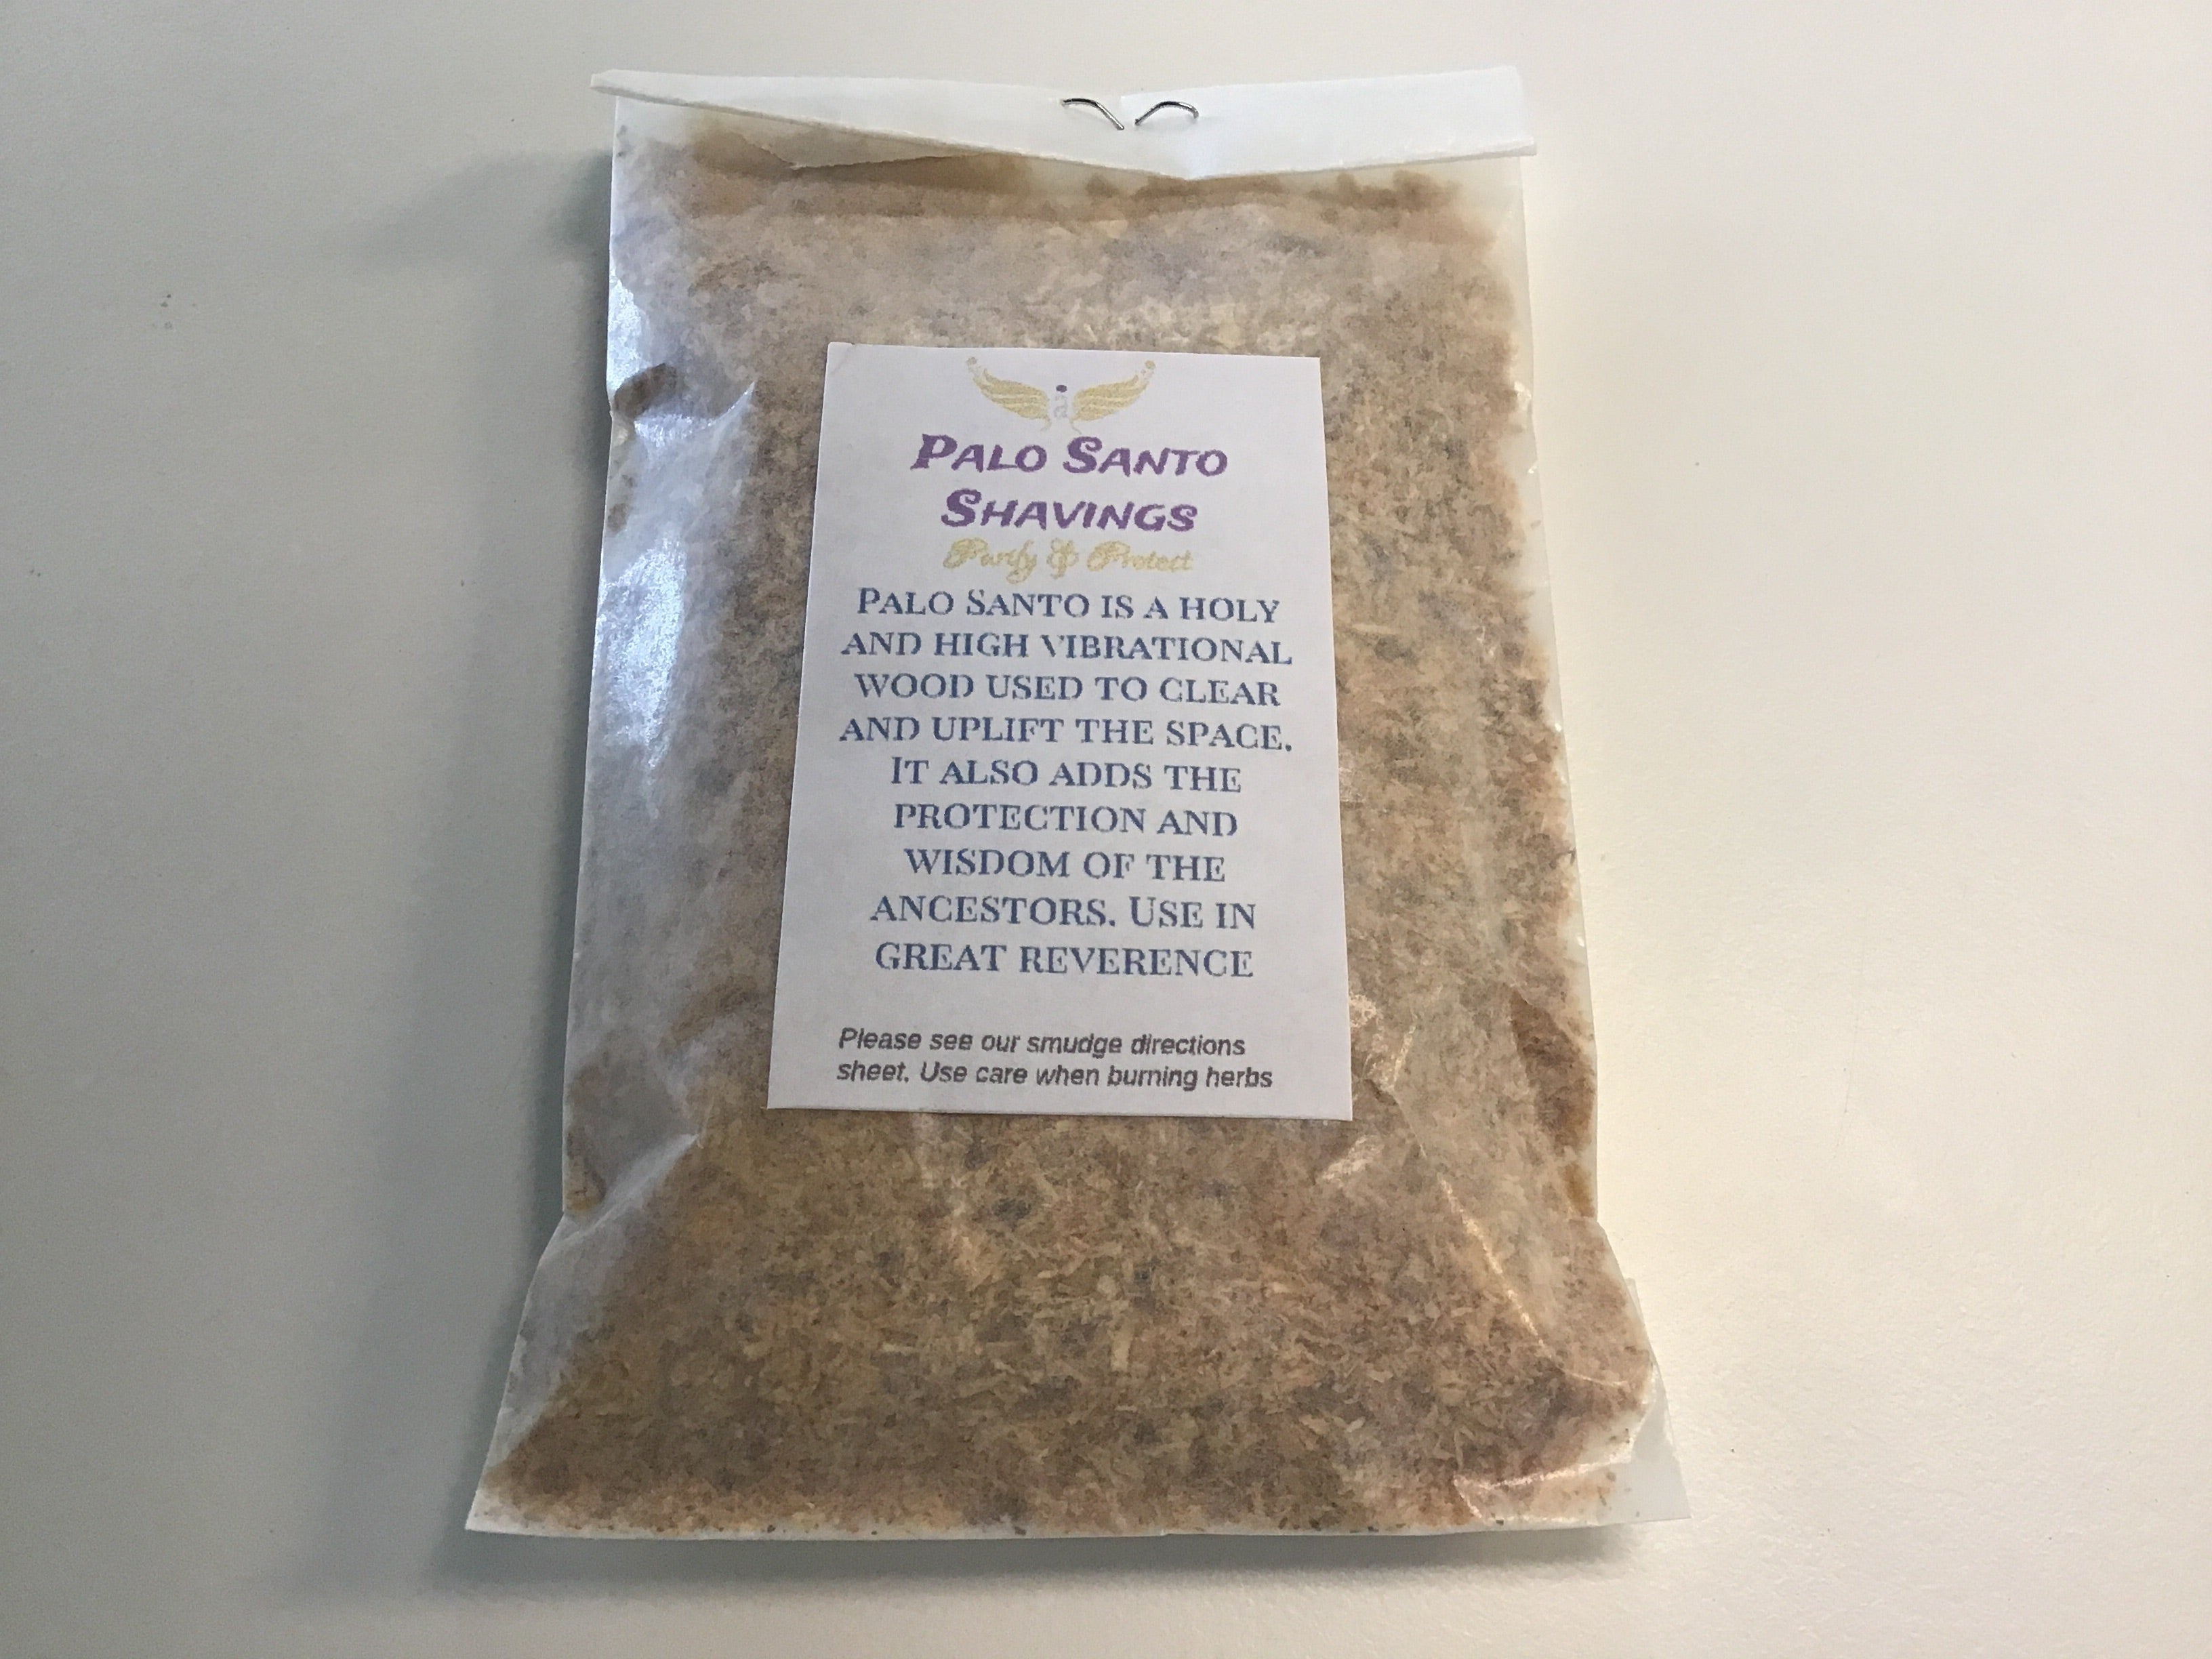 Palo Santo shavings - 1/2 oz